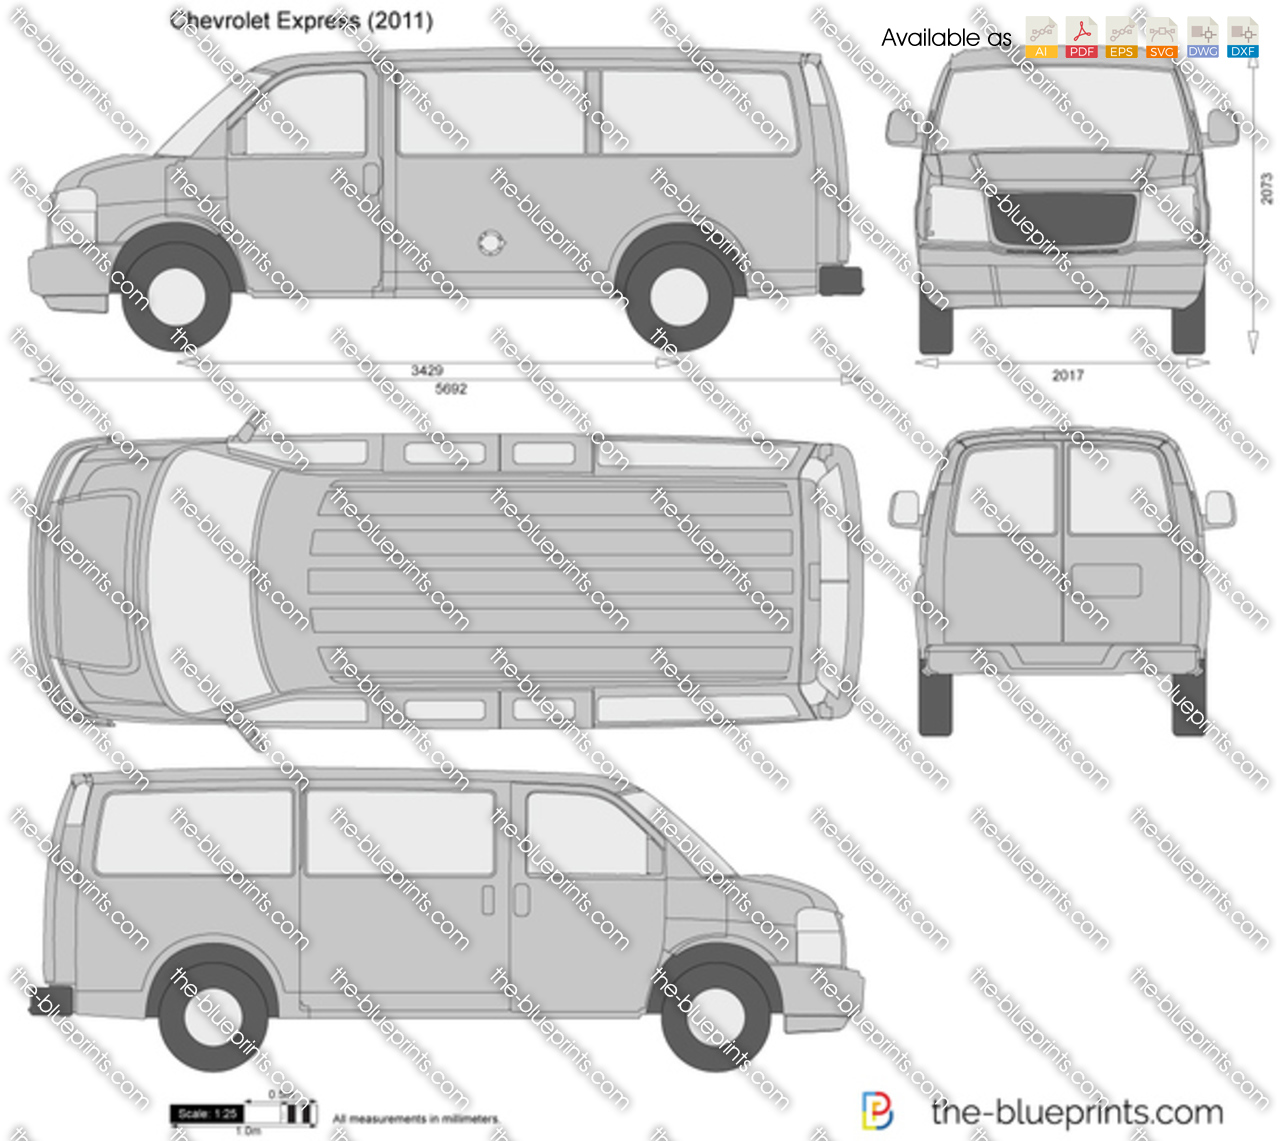 All Chevy 2003 chevy express van : The-Blueprints.com - Vector Drawing - Chevrolet Express